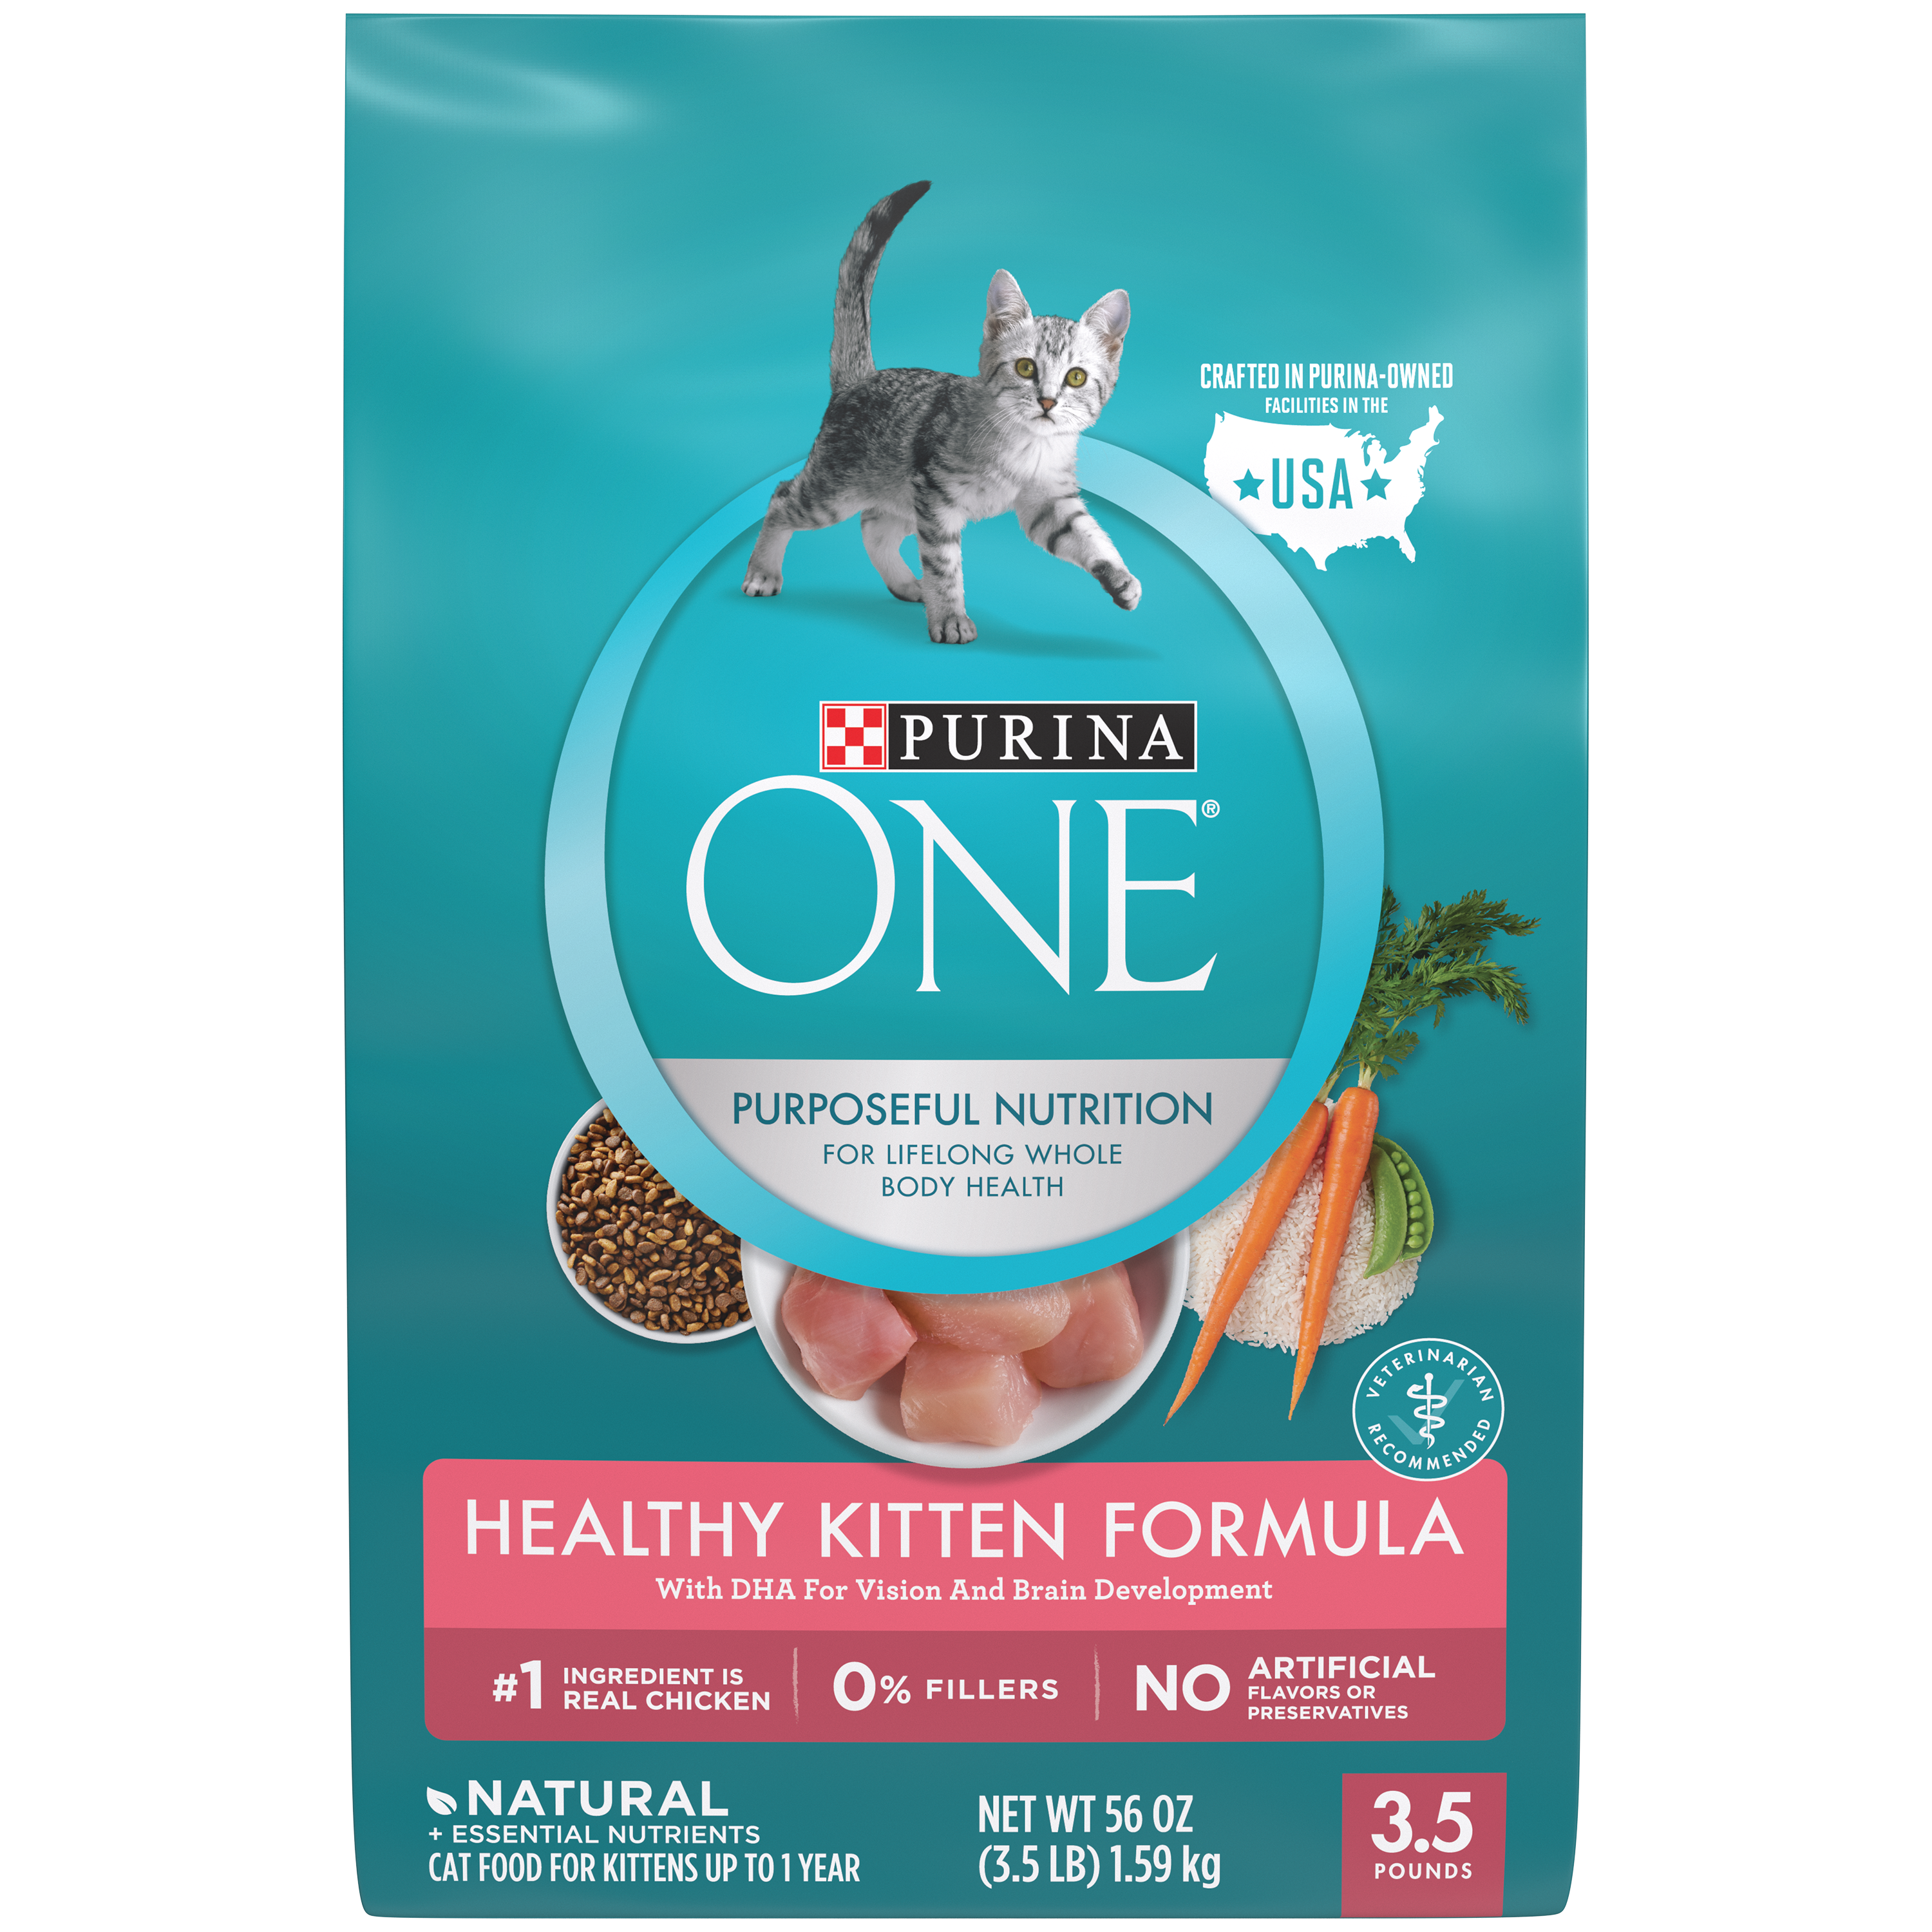 Kittens transparent food. Purina one healthy kitten